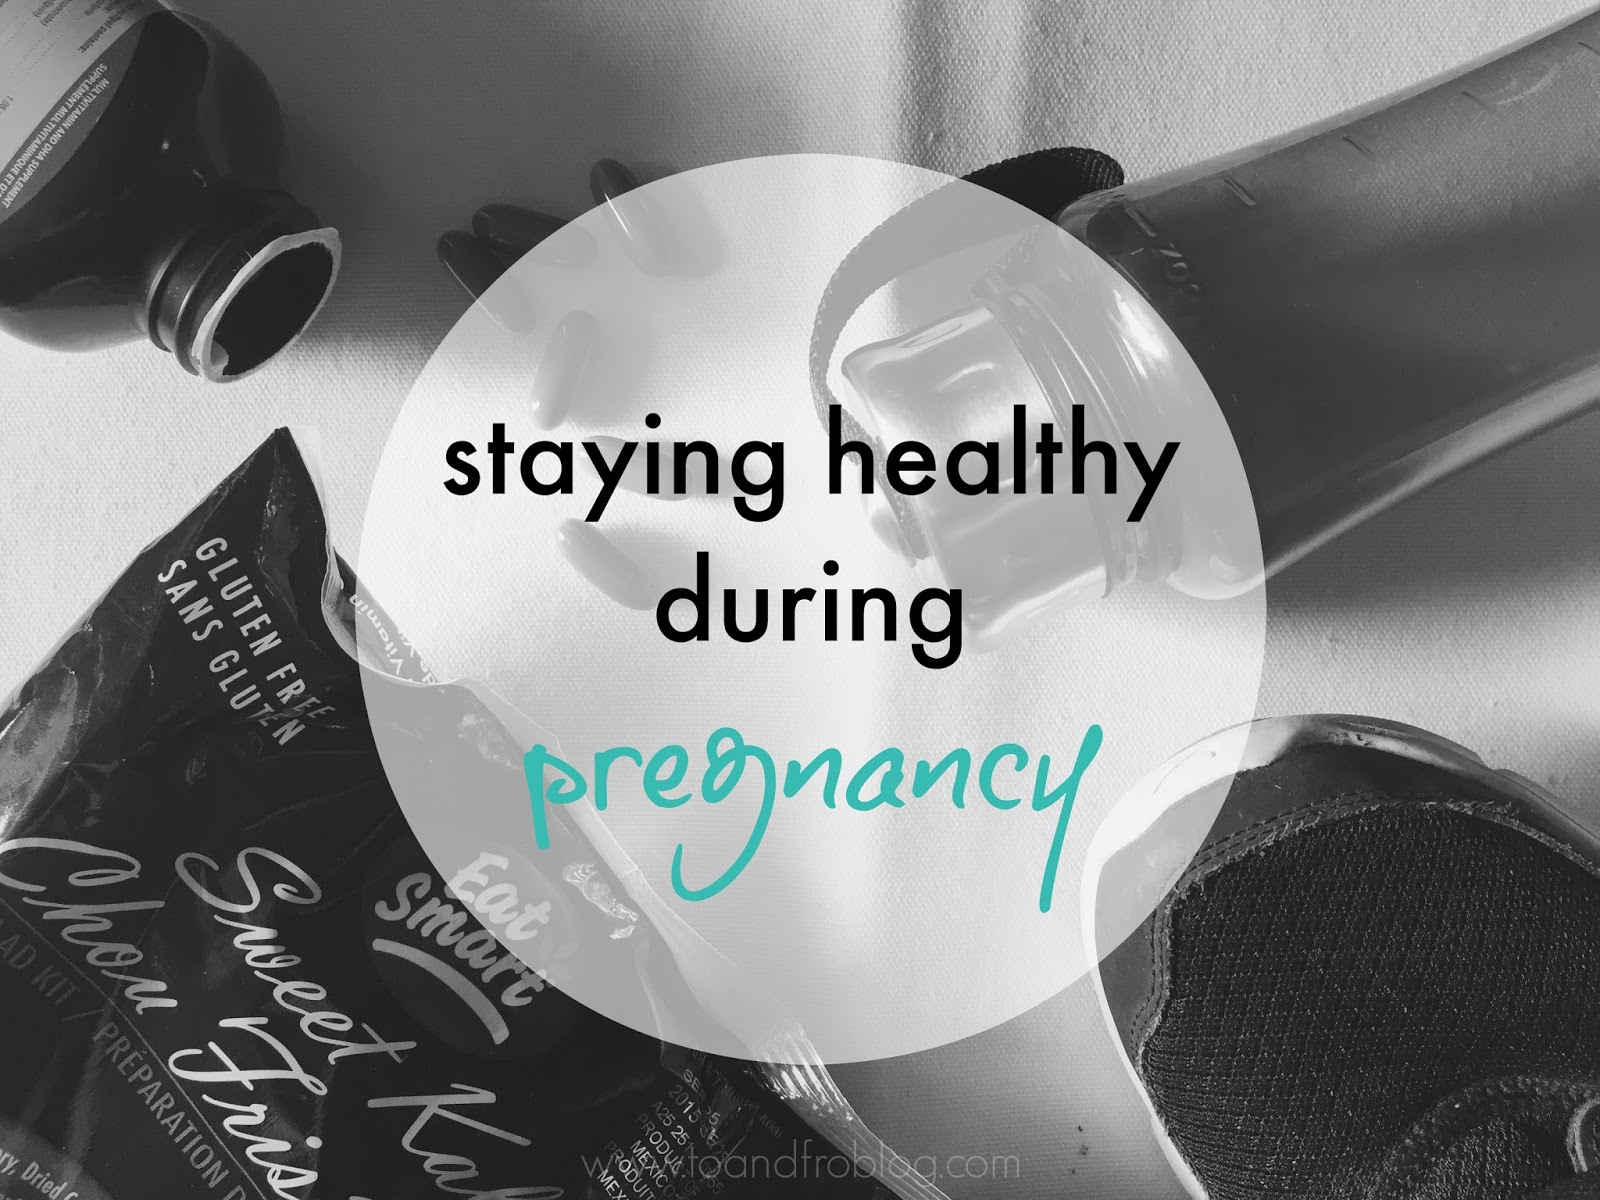 5 ways to stay healthy during pregnancy